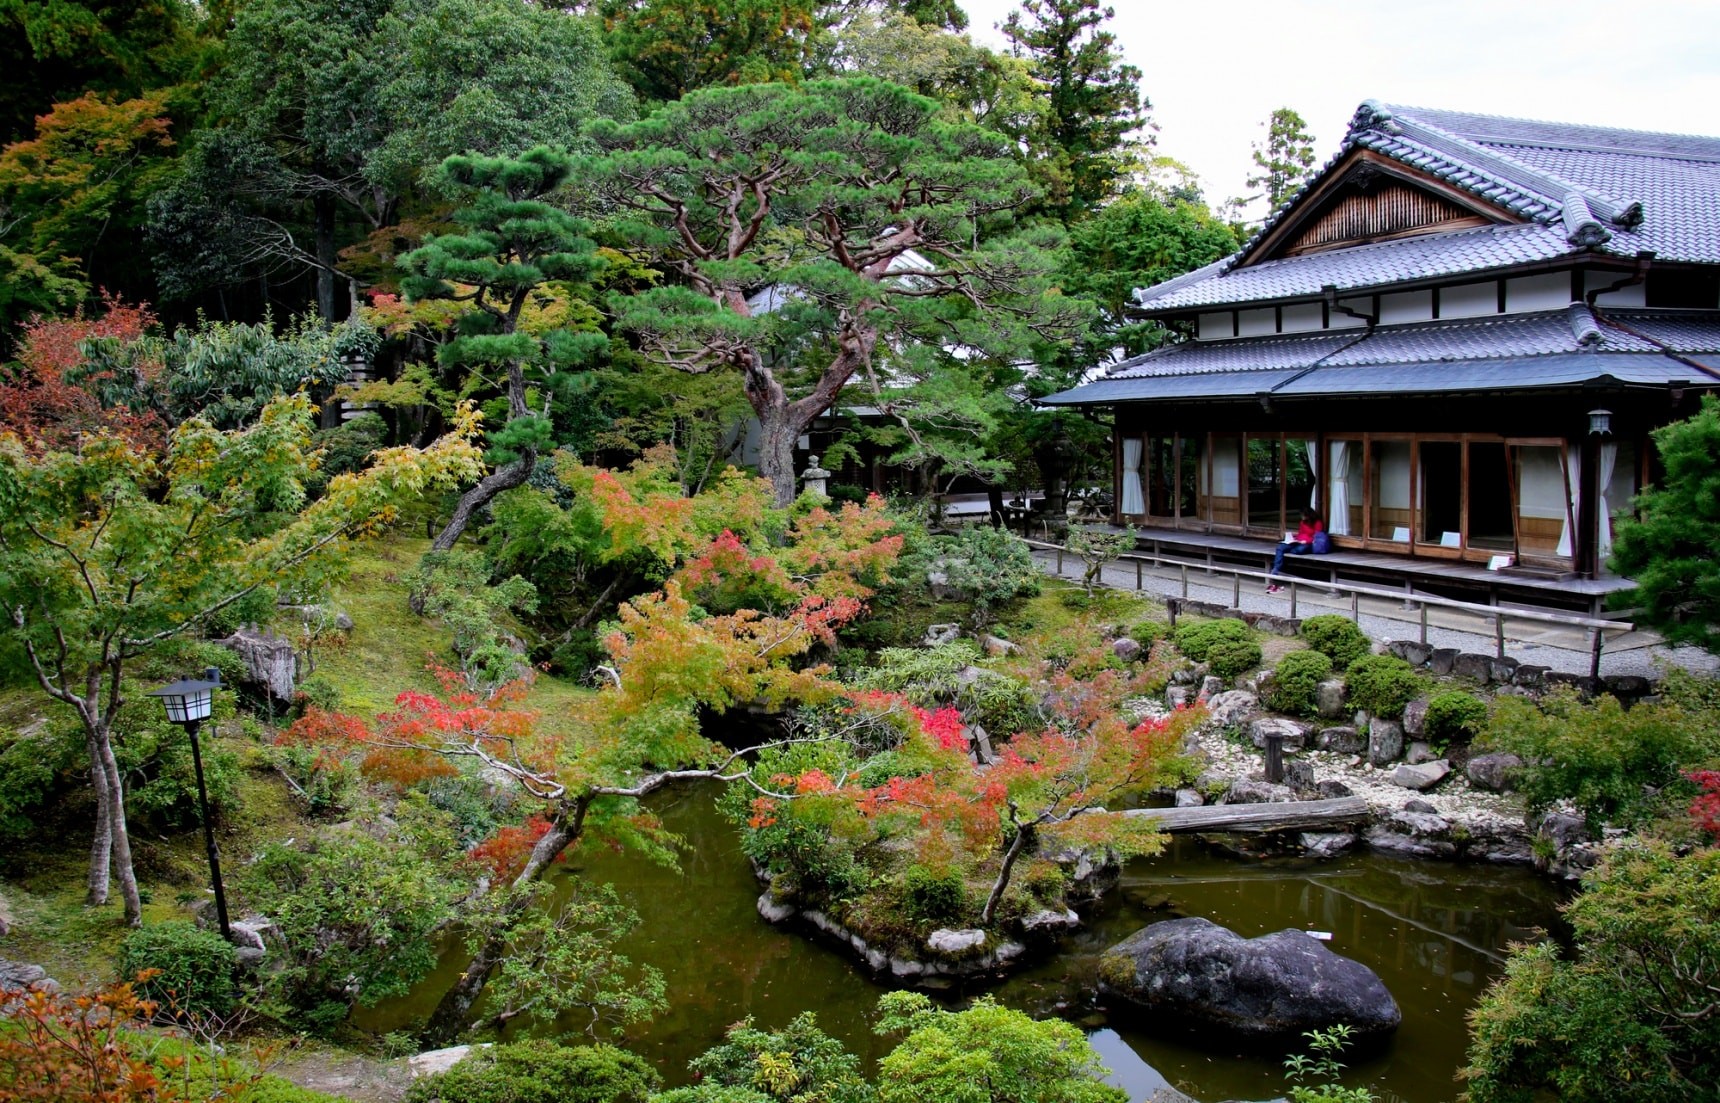 Top 10 Hidden Spots in Nara